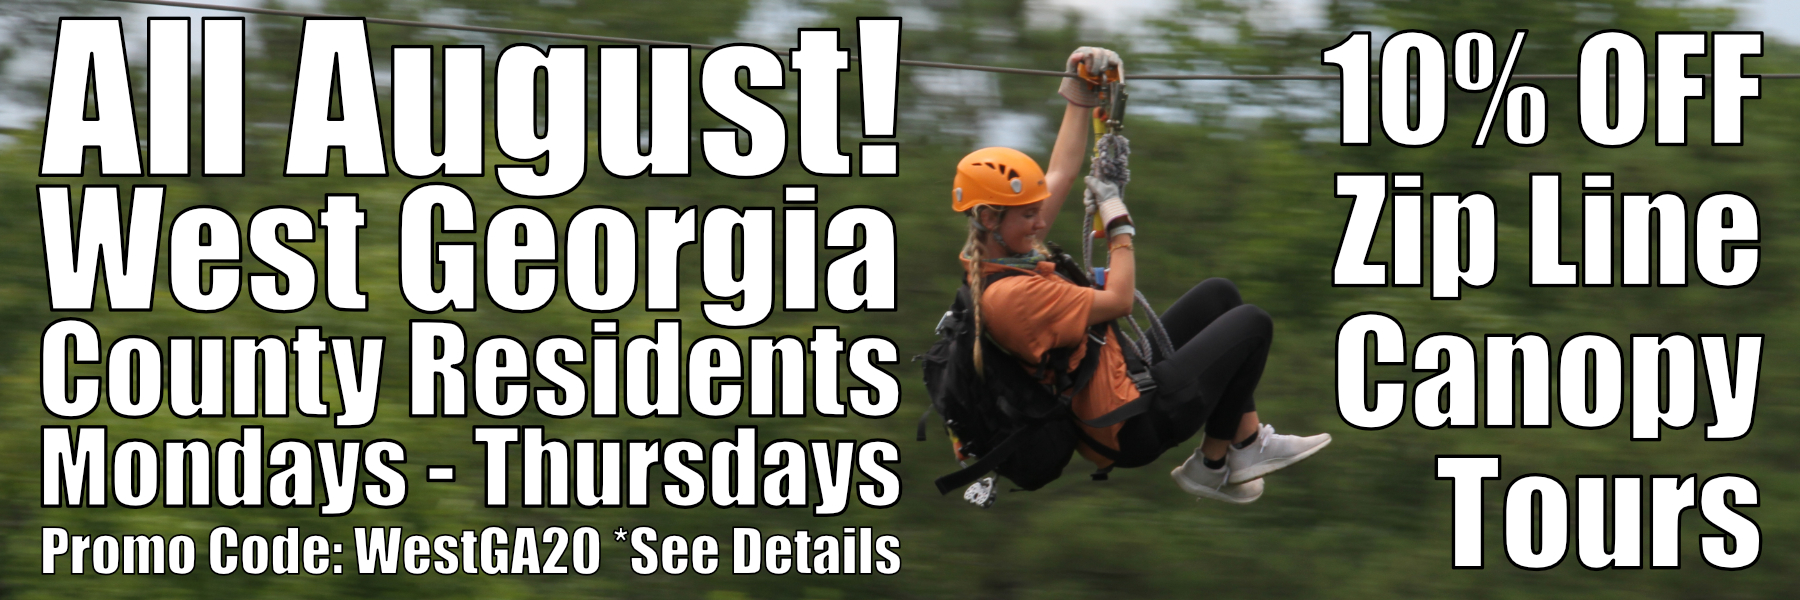 10% Off West GA County Residents